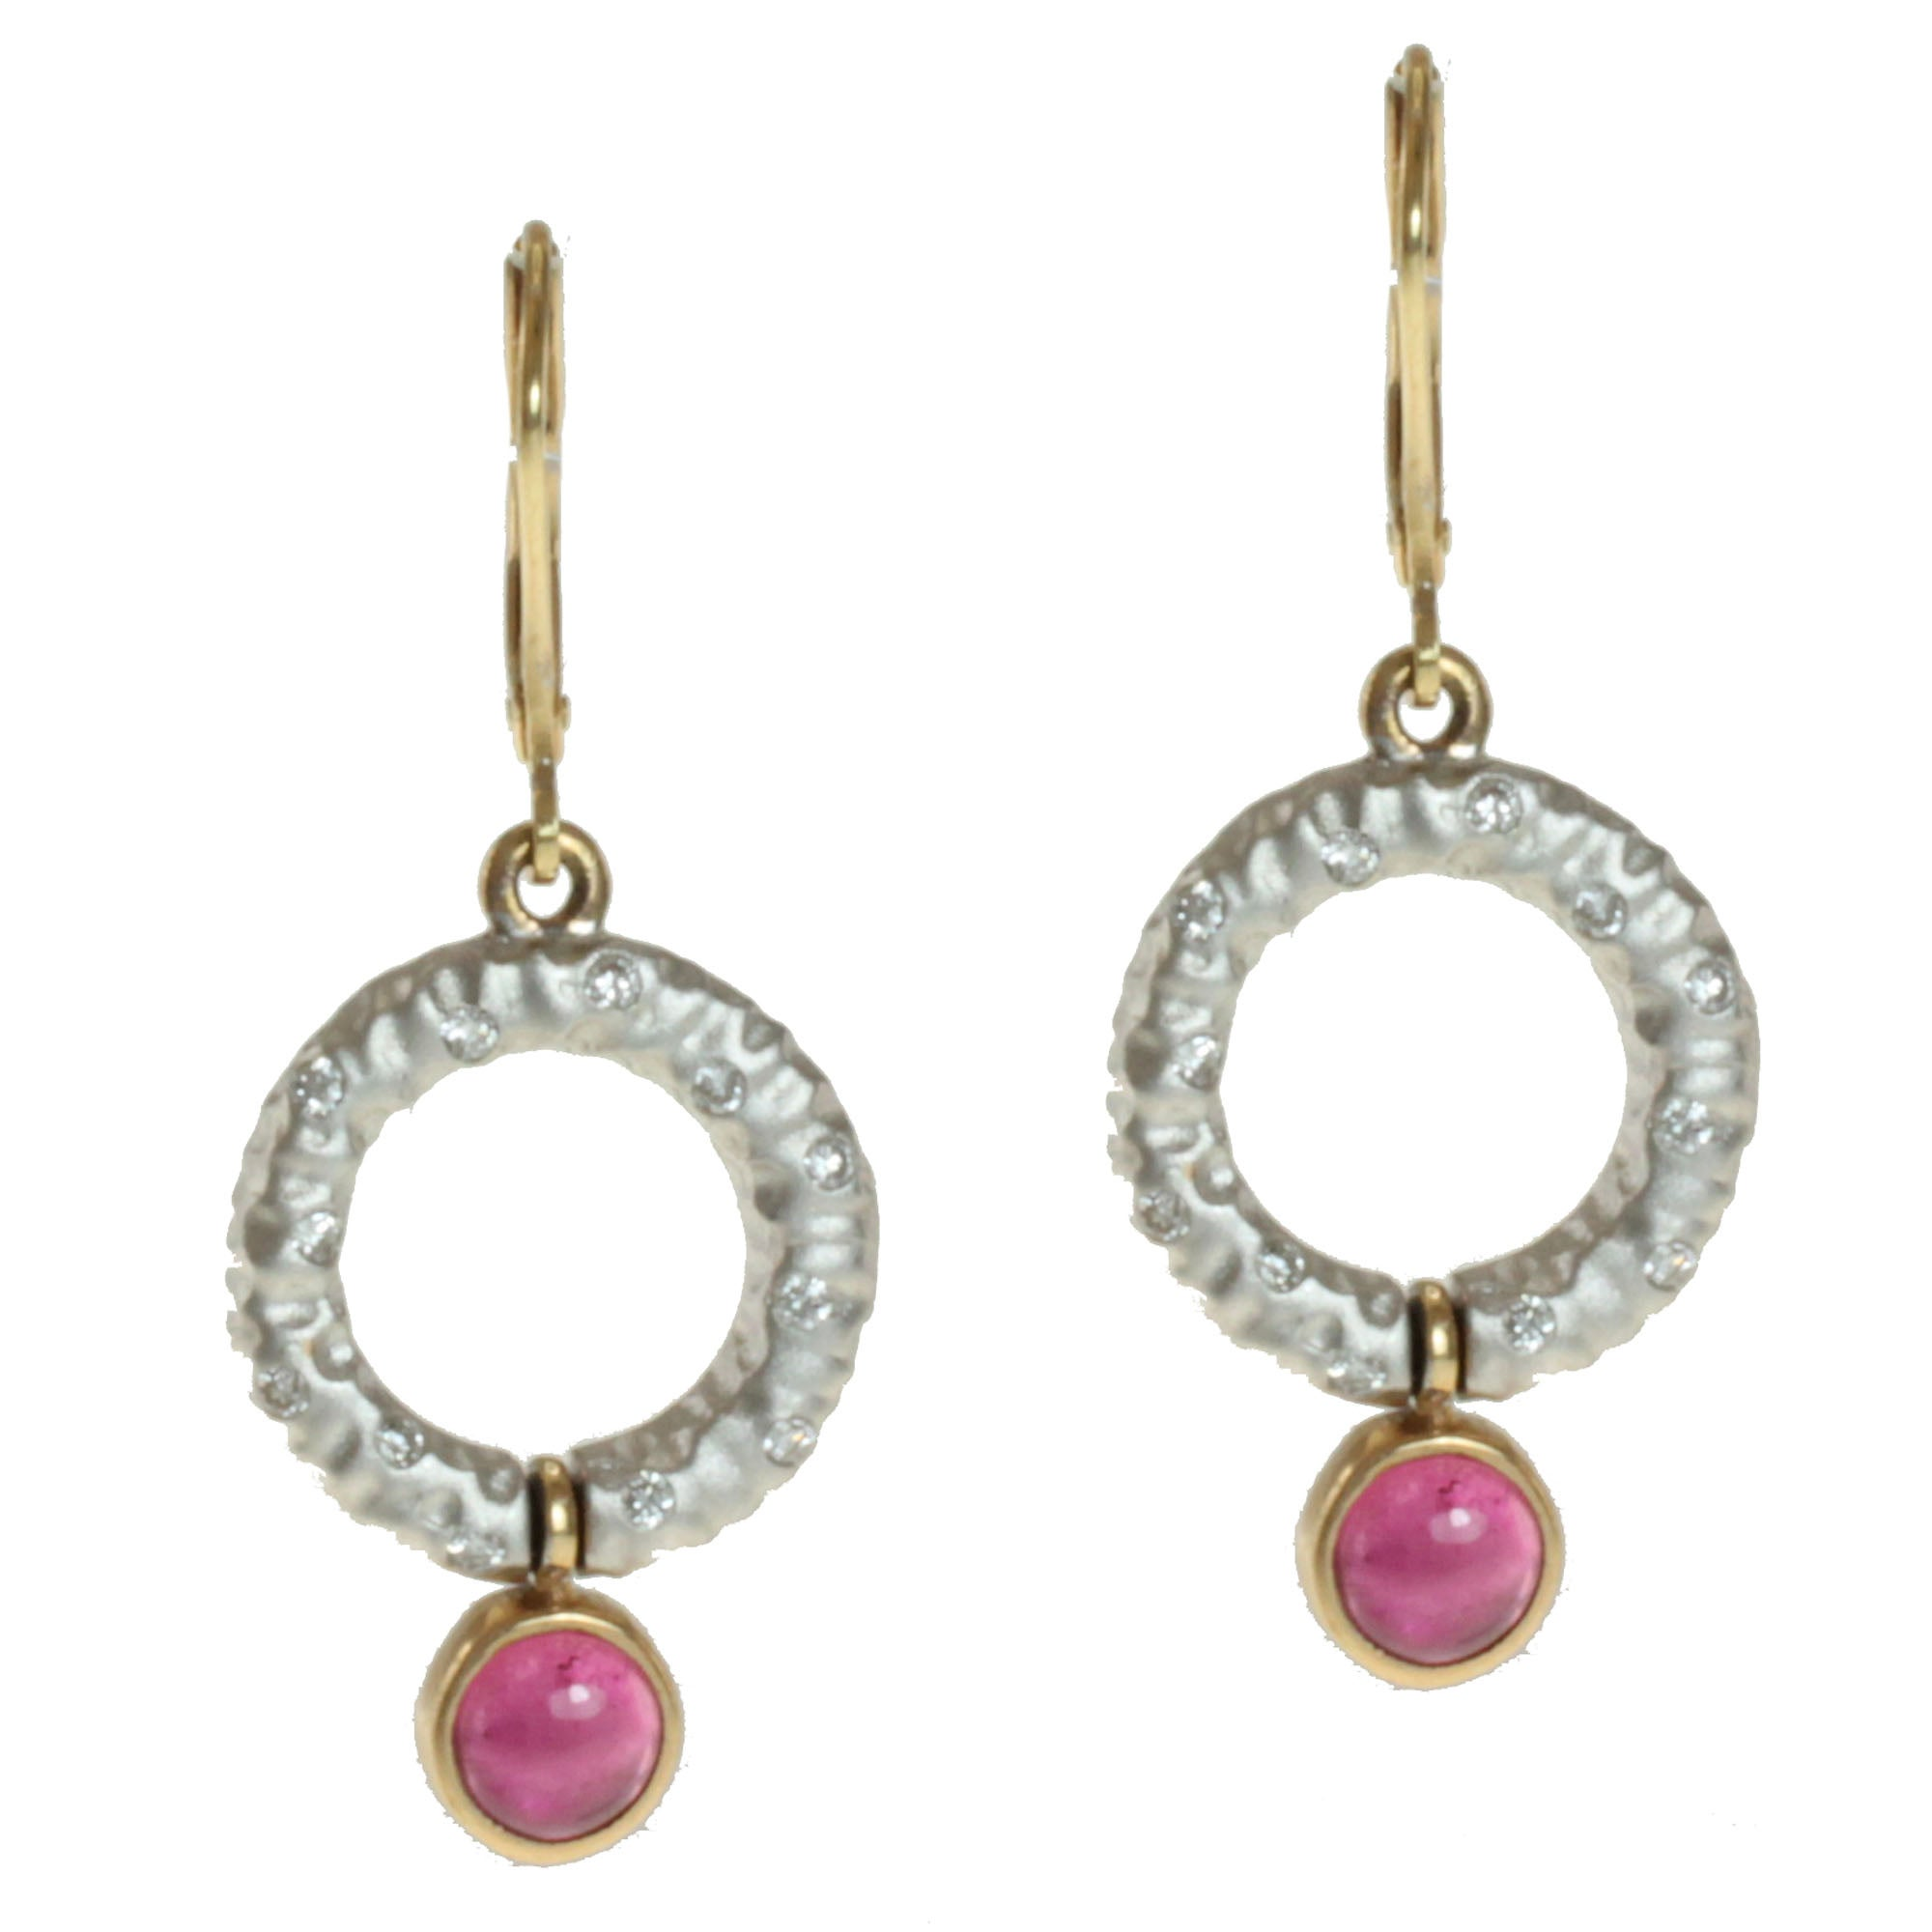 Michael Valitutti 14k Two-tone Gold Pink Tourmaline and Diamond Earrings